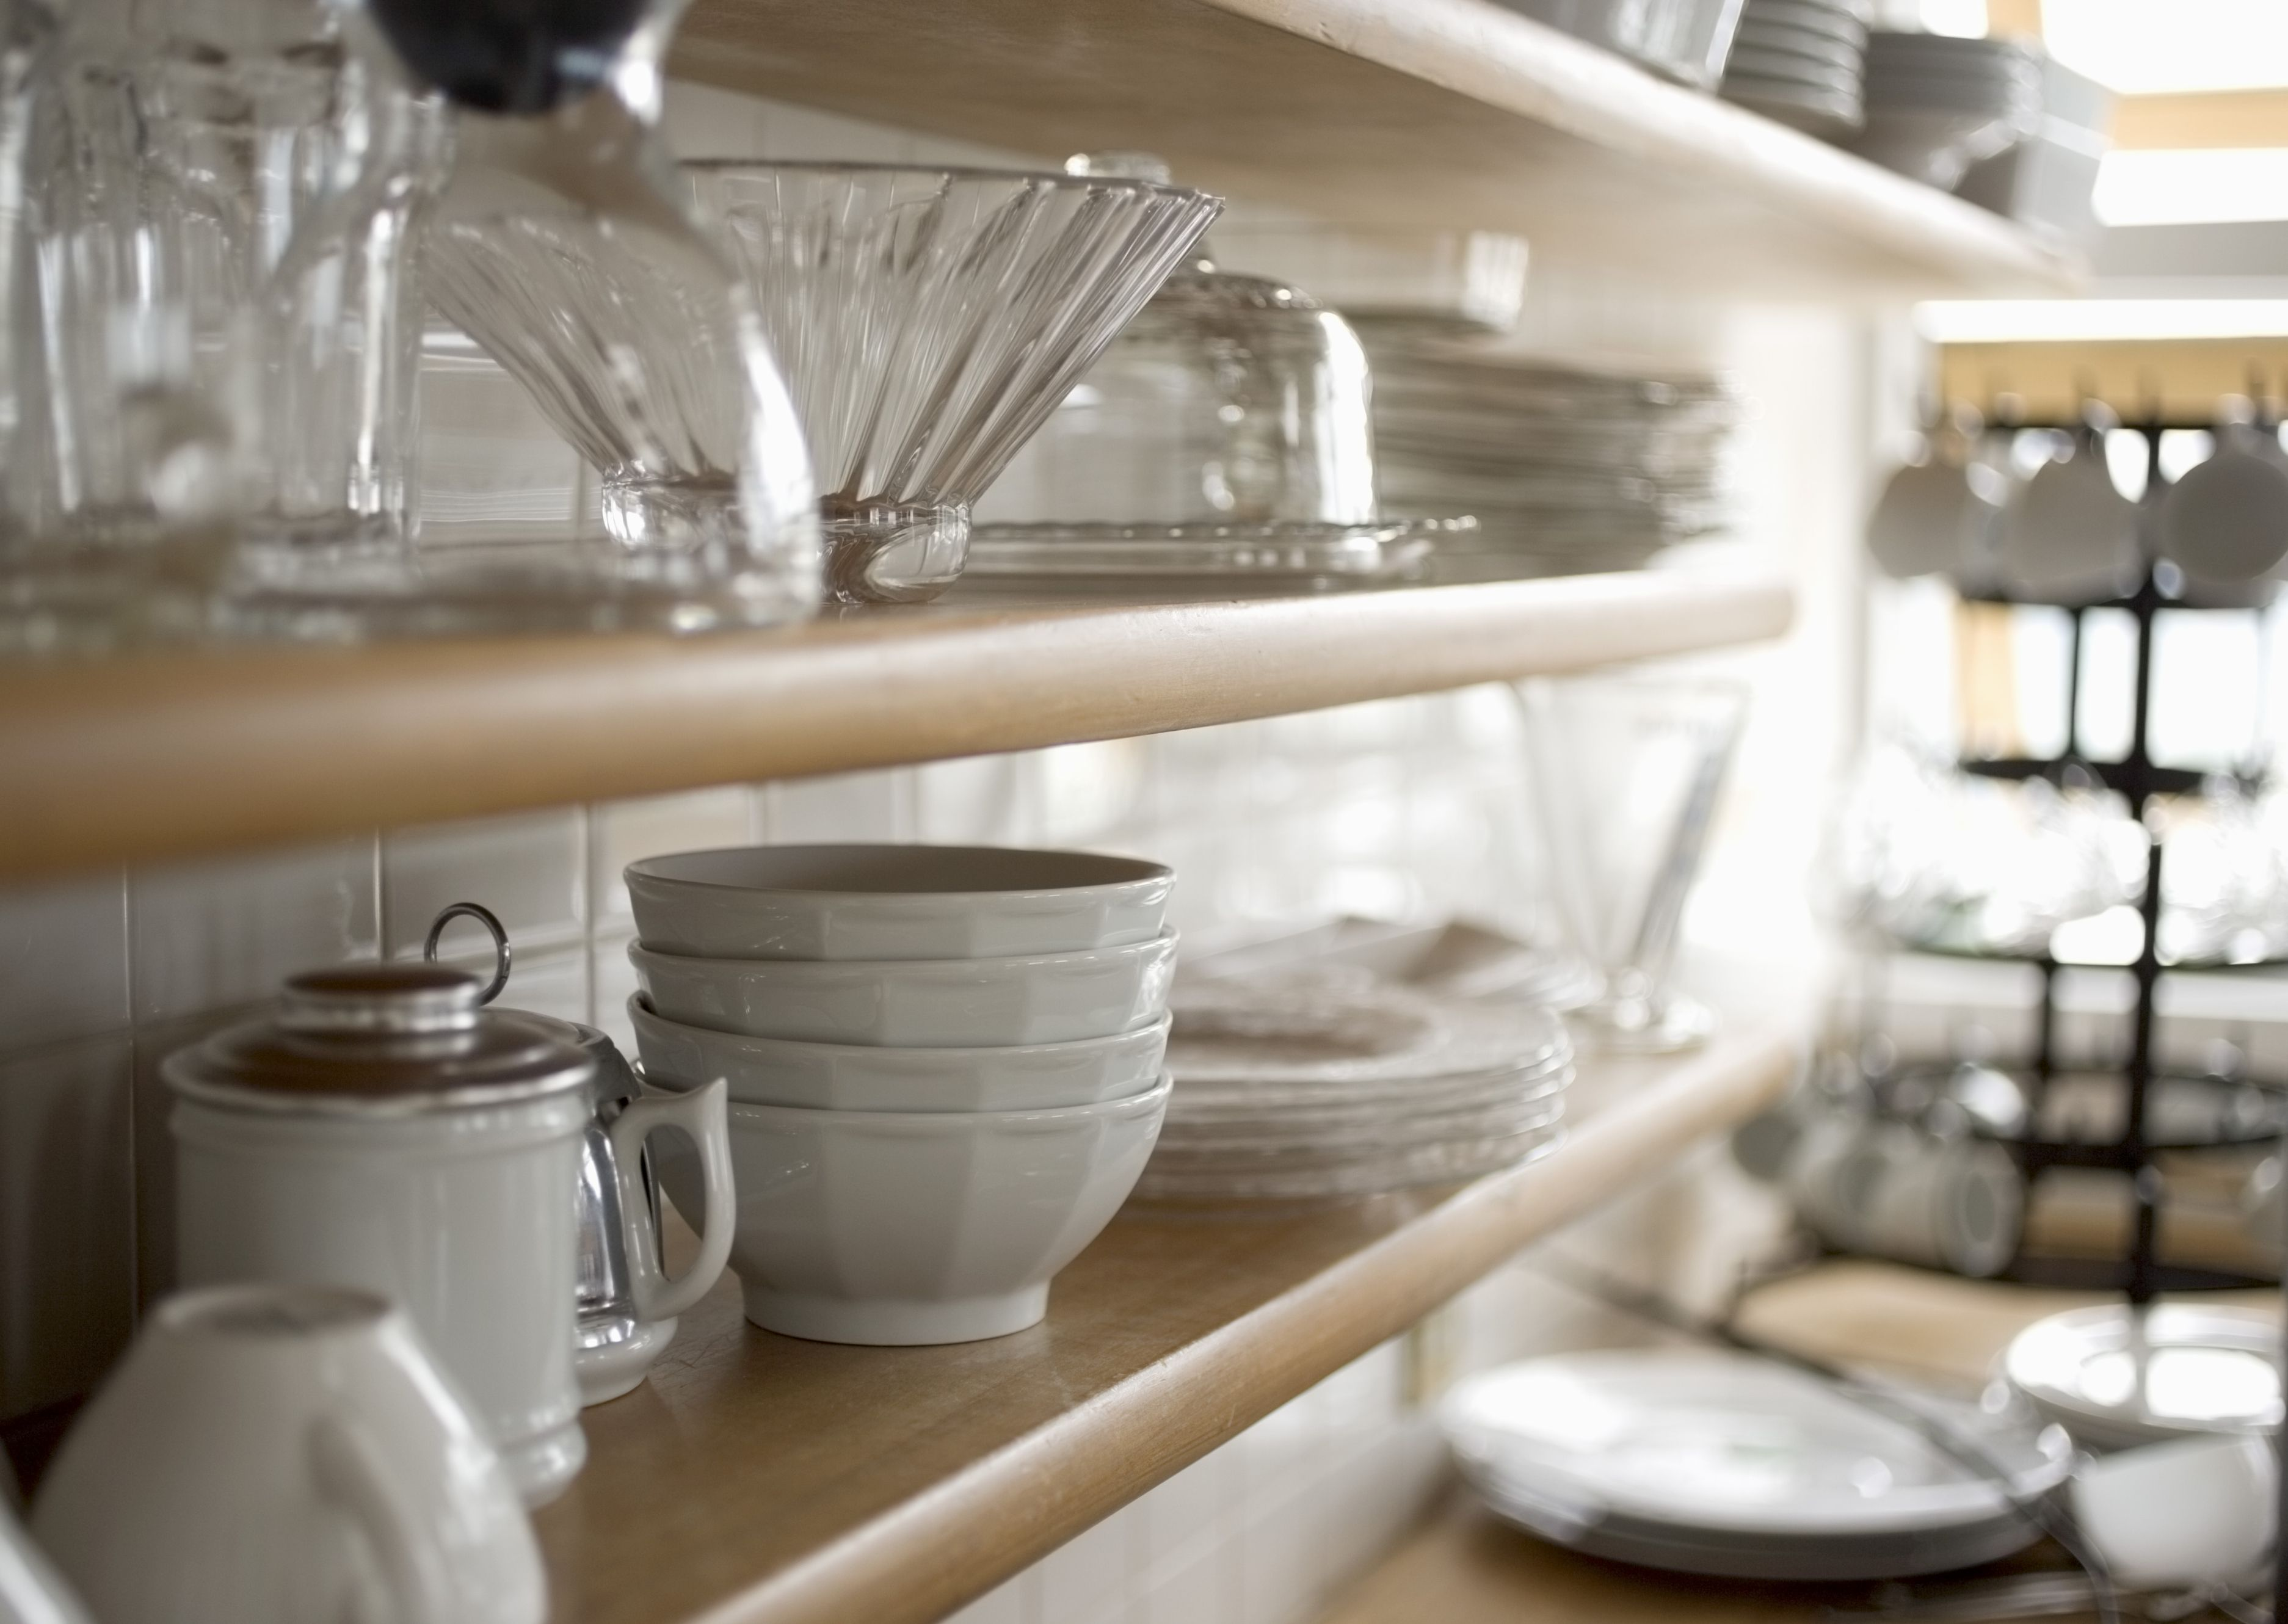 Mistakes With Dishware and Glasses - What Causes Plates to Crack